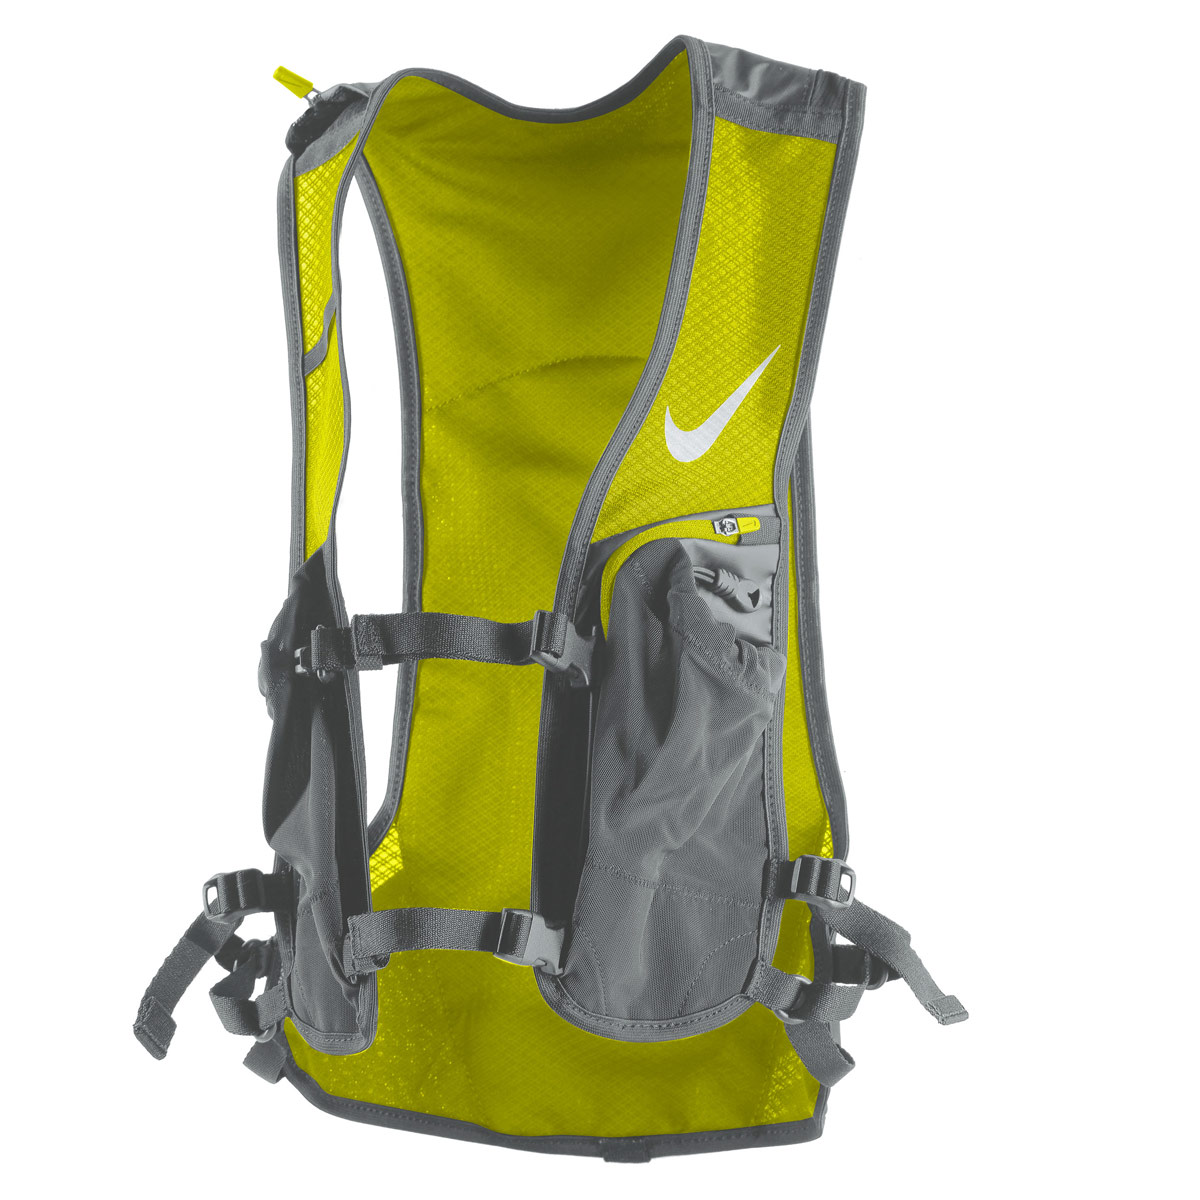 96c3e4f195 Nike Hydration Race Vest - Backpacks - Green | 21RUN